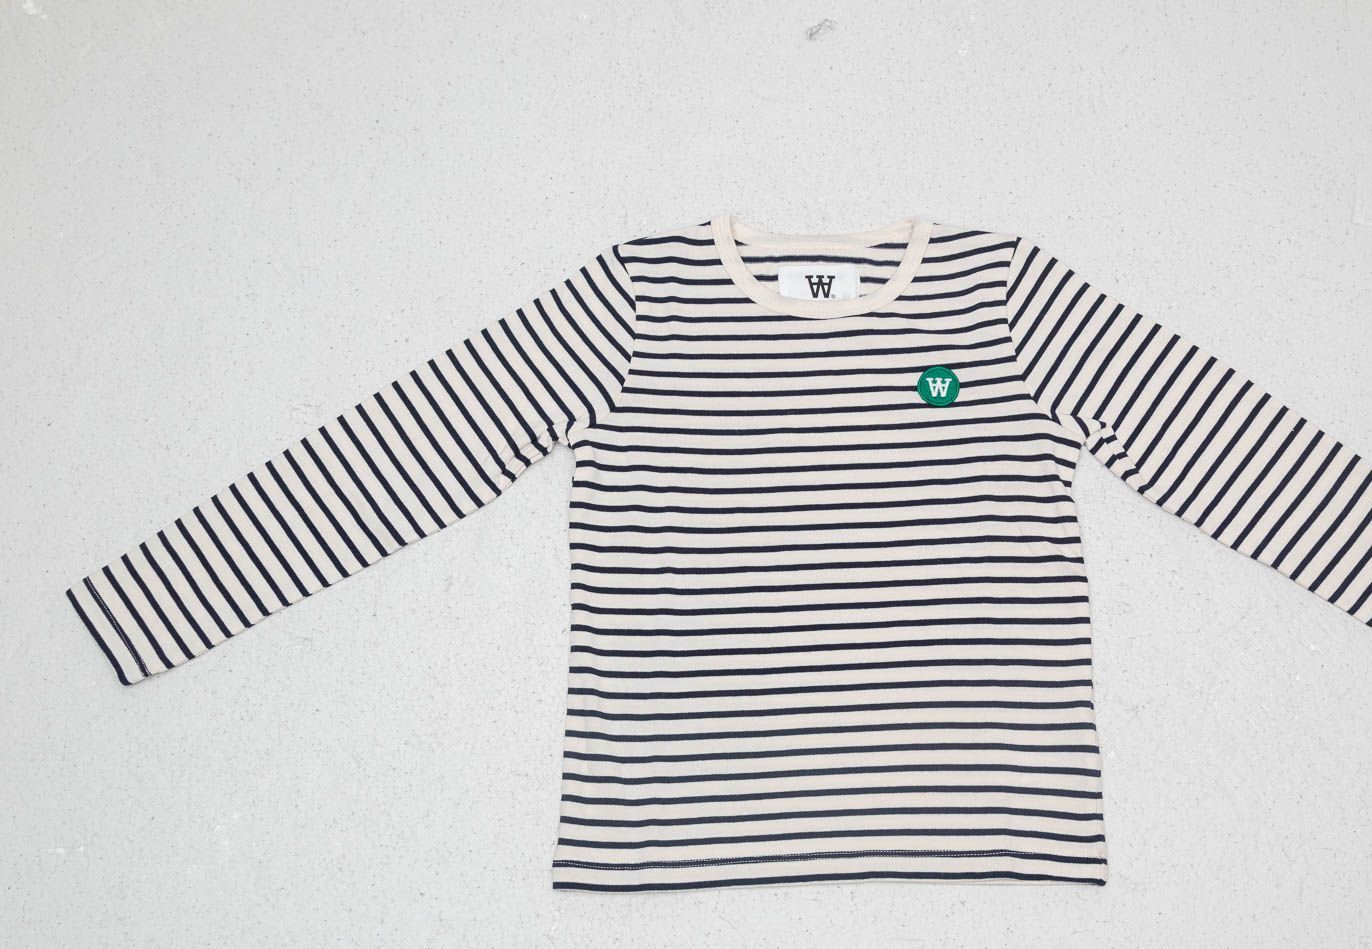 WOOD WOOD Kids Kim Longsleeve Tee Off White Navy Stripes